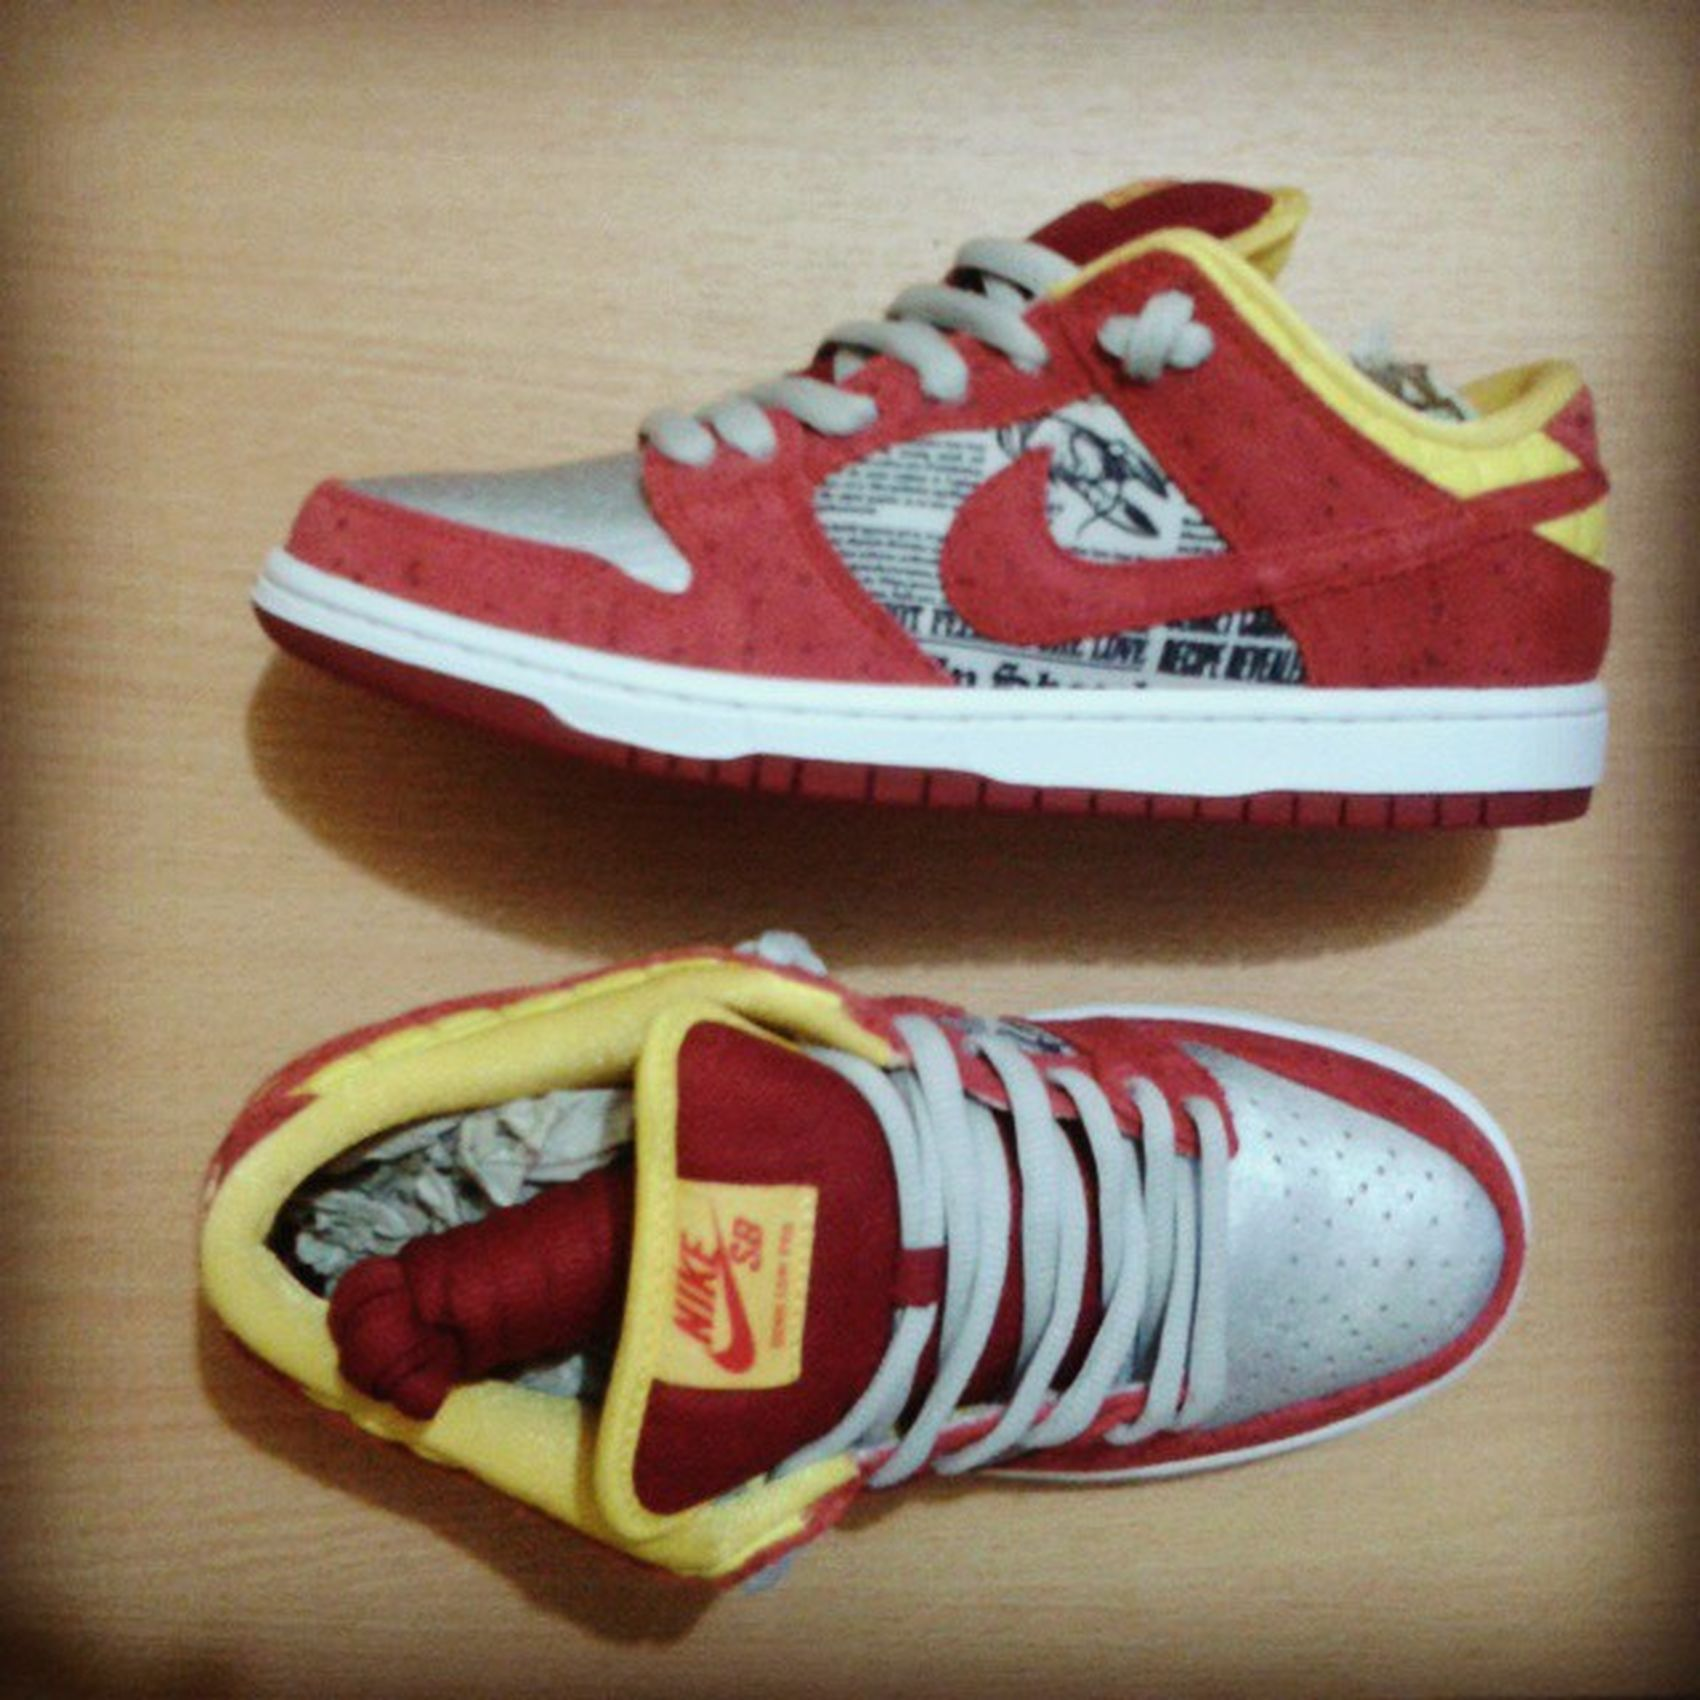 Masterpiece Nikesbdunklow Crawfish Rukus Collection Nikesb Solecollector